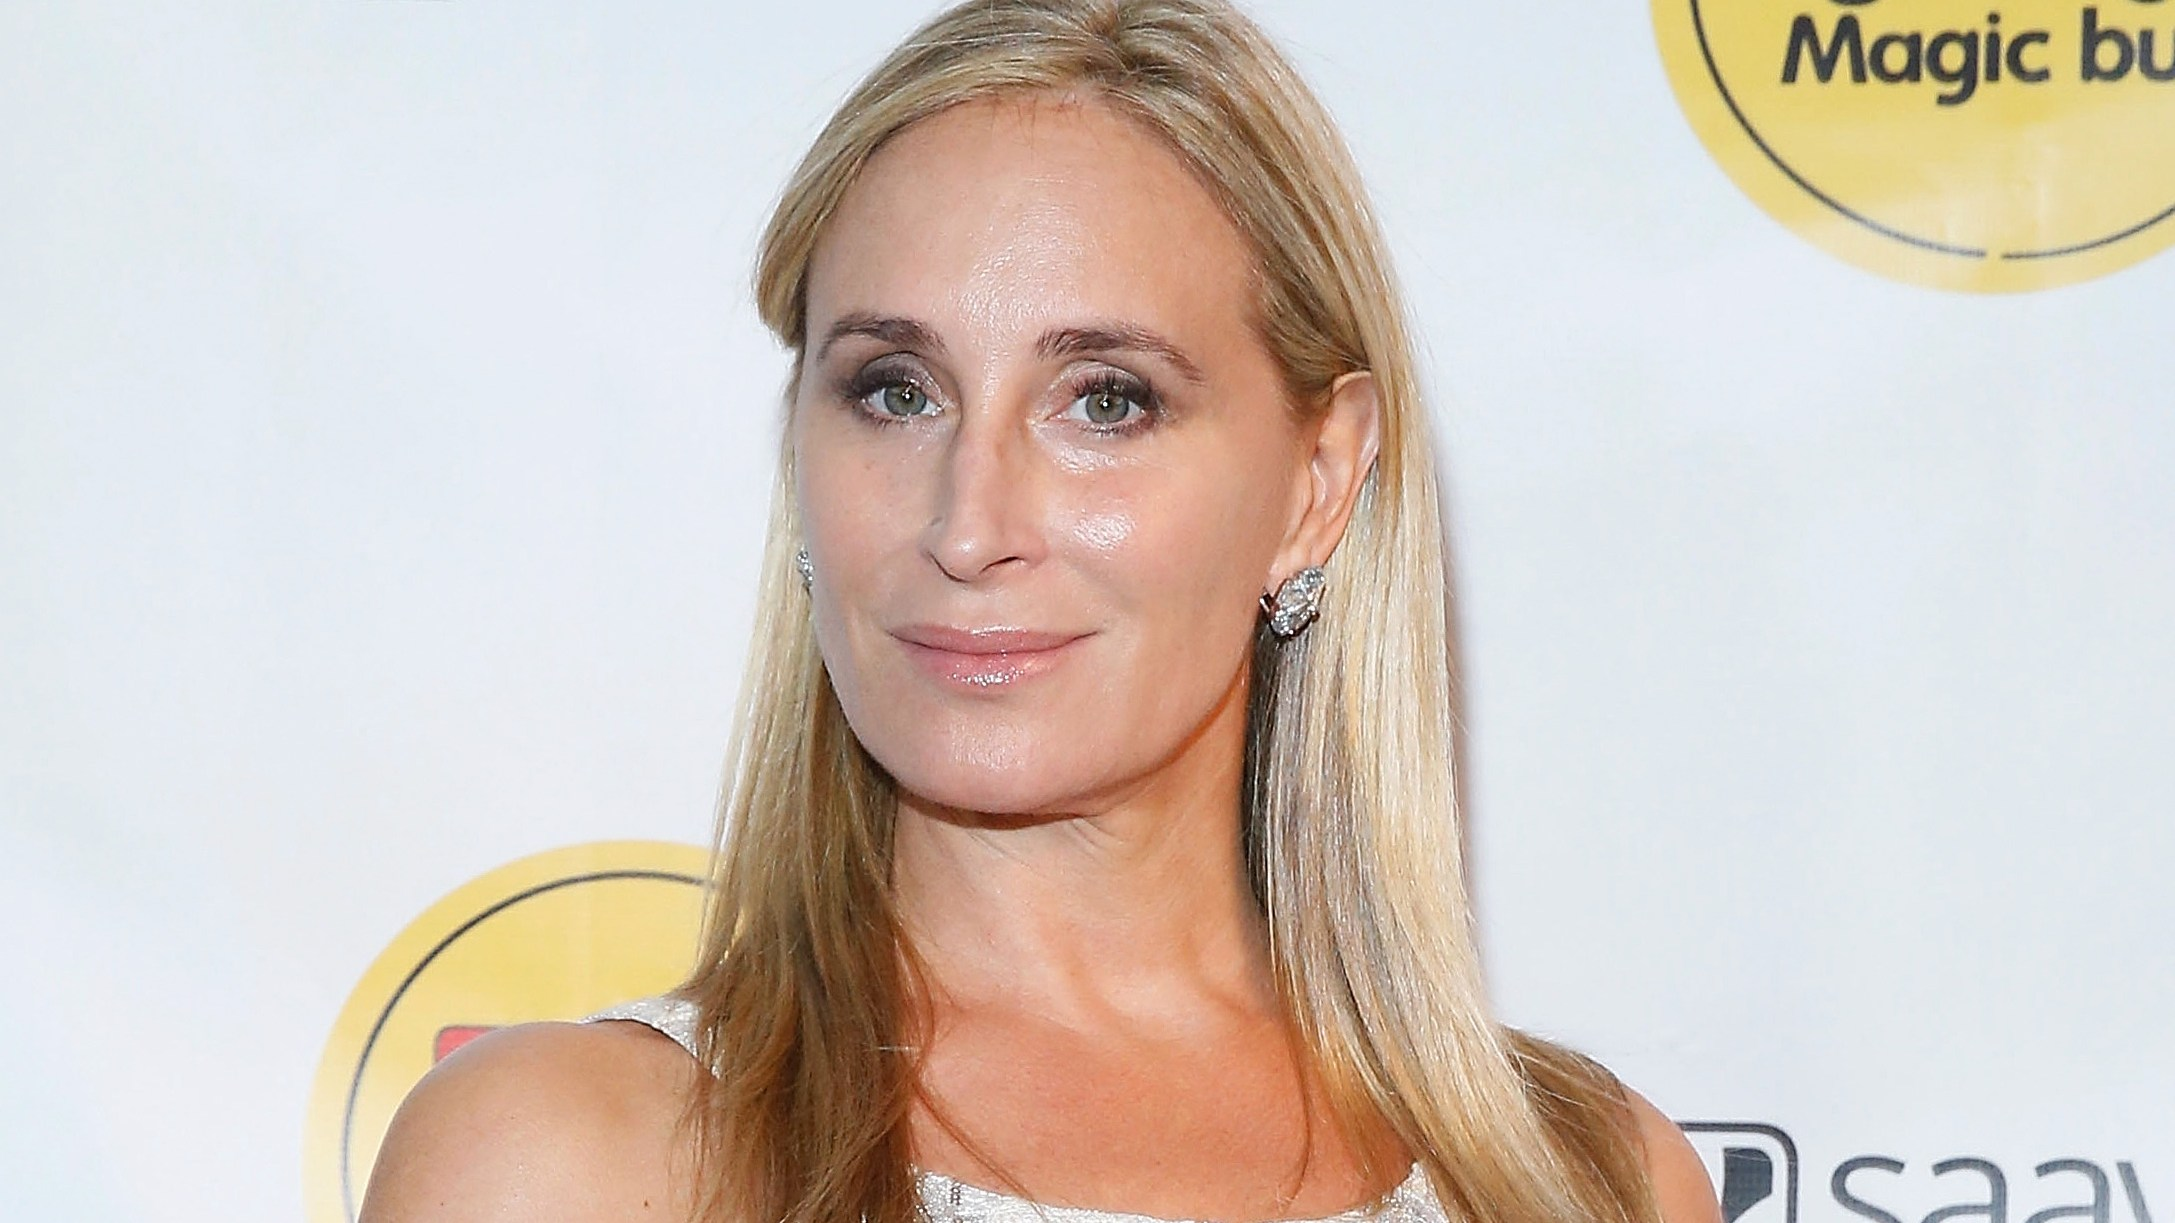 sonja-morgan-95223fd6-08b1-40b4-86b5-95e8bd6bad97